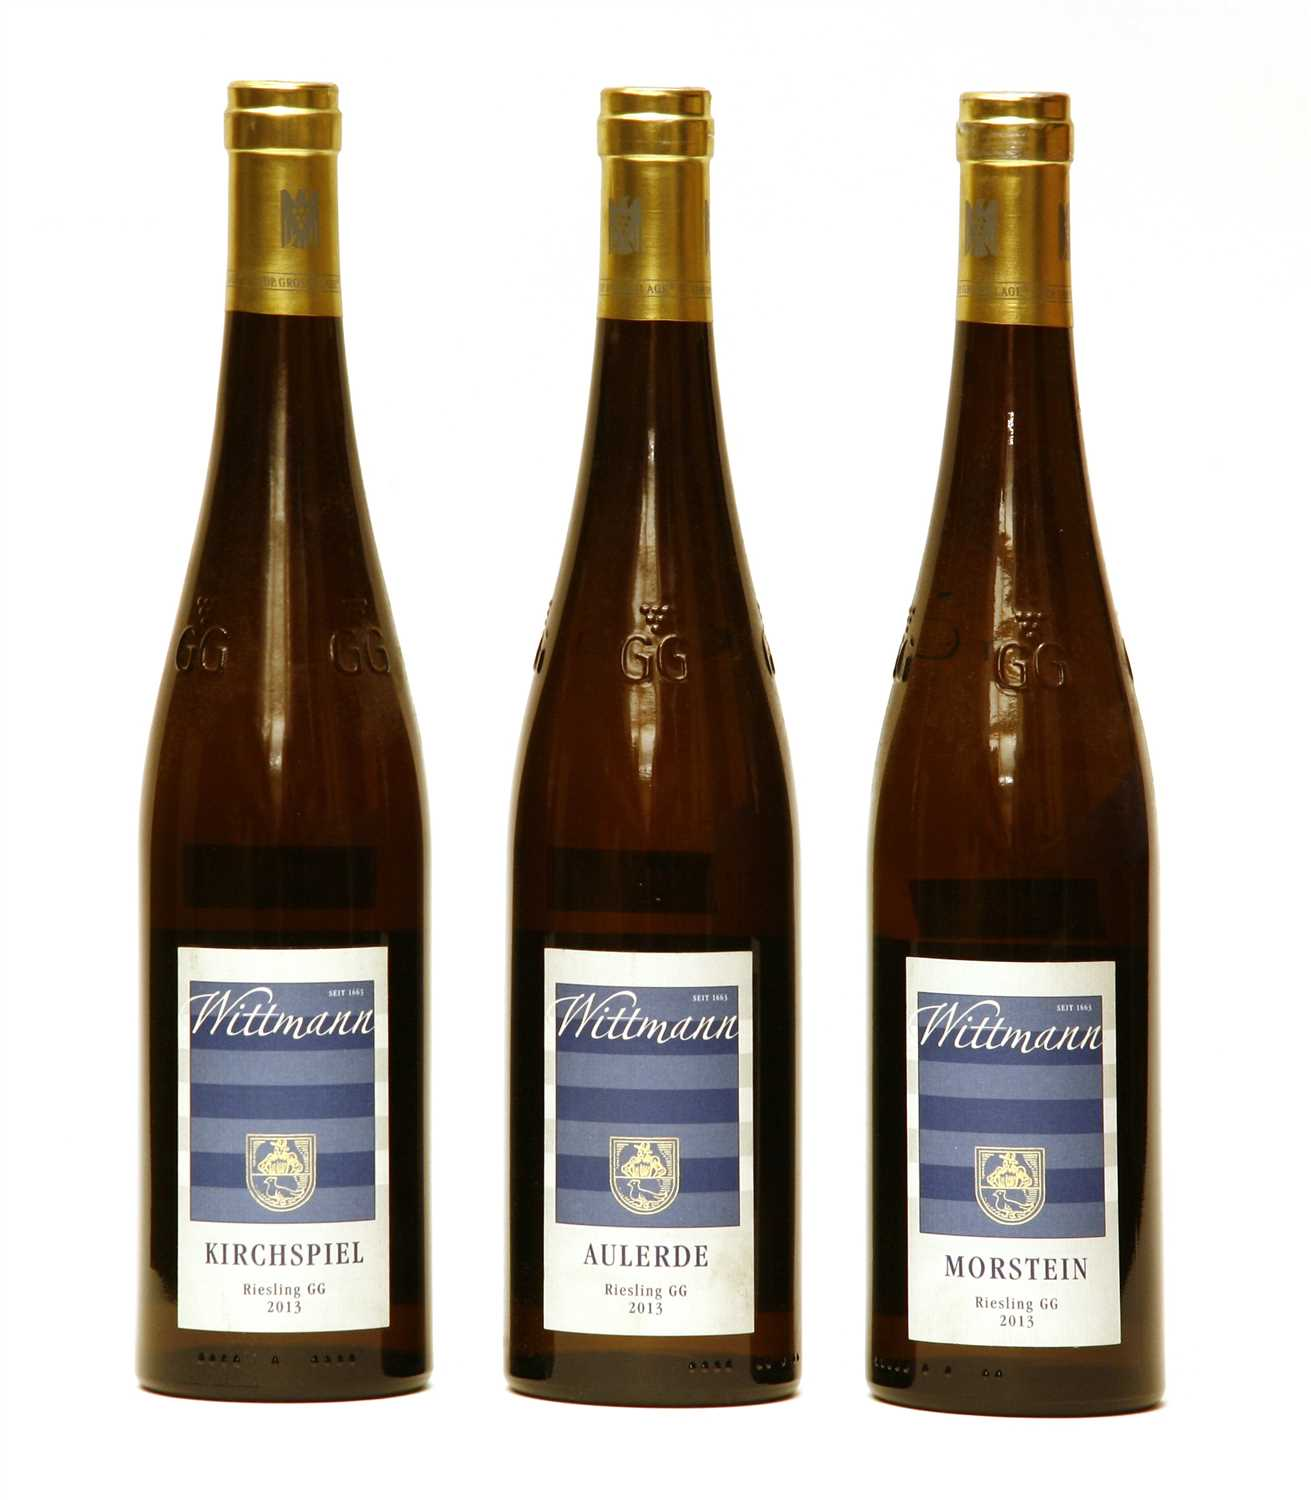 Lot 4-Wittmann, Riesling GG, 2013, one bottle each Aulerde, Morstein and Kirchspiel, three bottles total